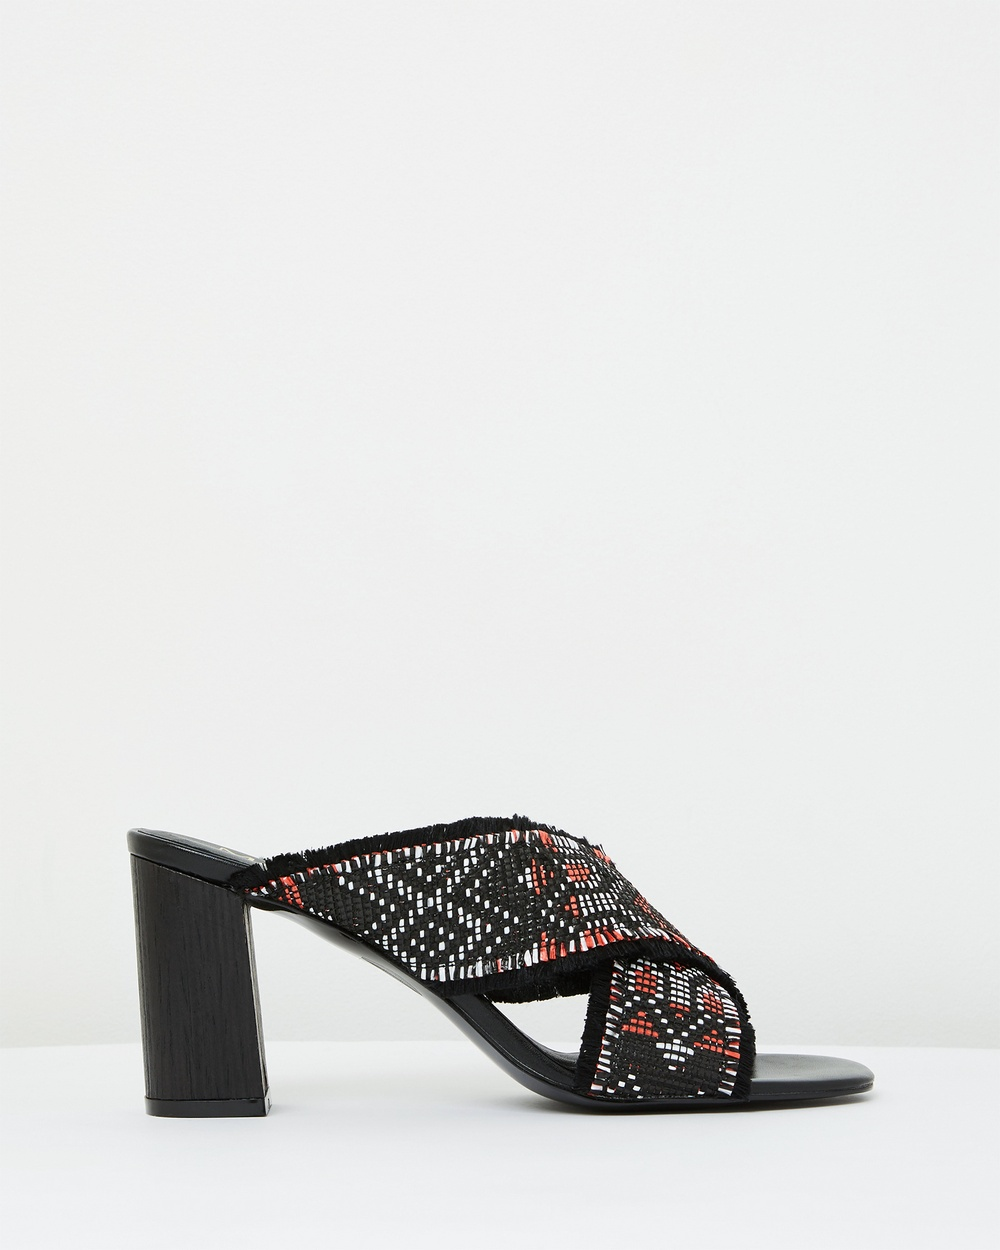 Mode Collective Sandstorm Low Mule Heels Black / Red Sandstorm Low Mule